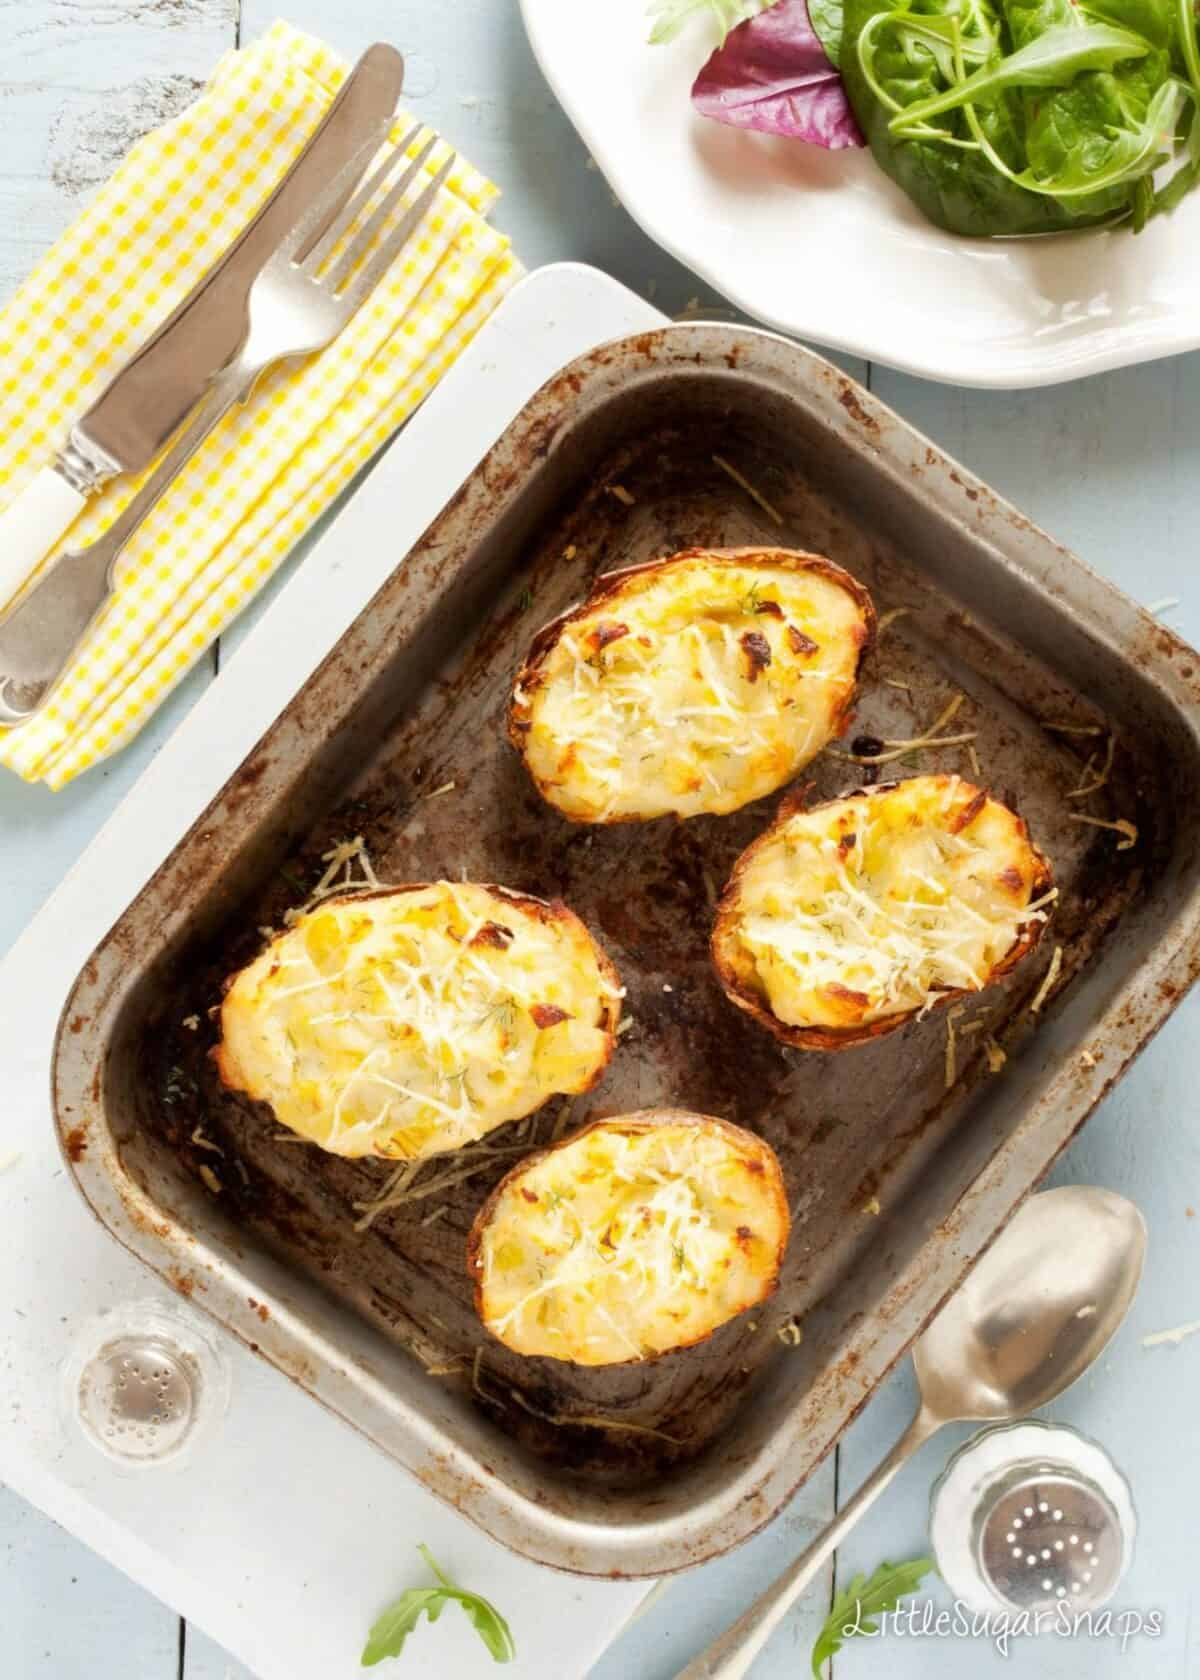 Four halves of Cheesy Leek Baked Potatoes just cooked.